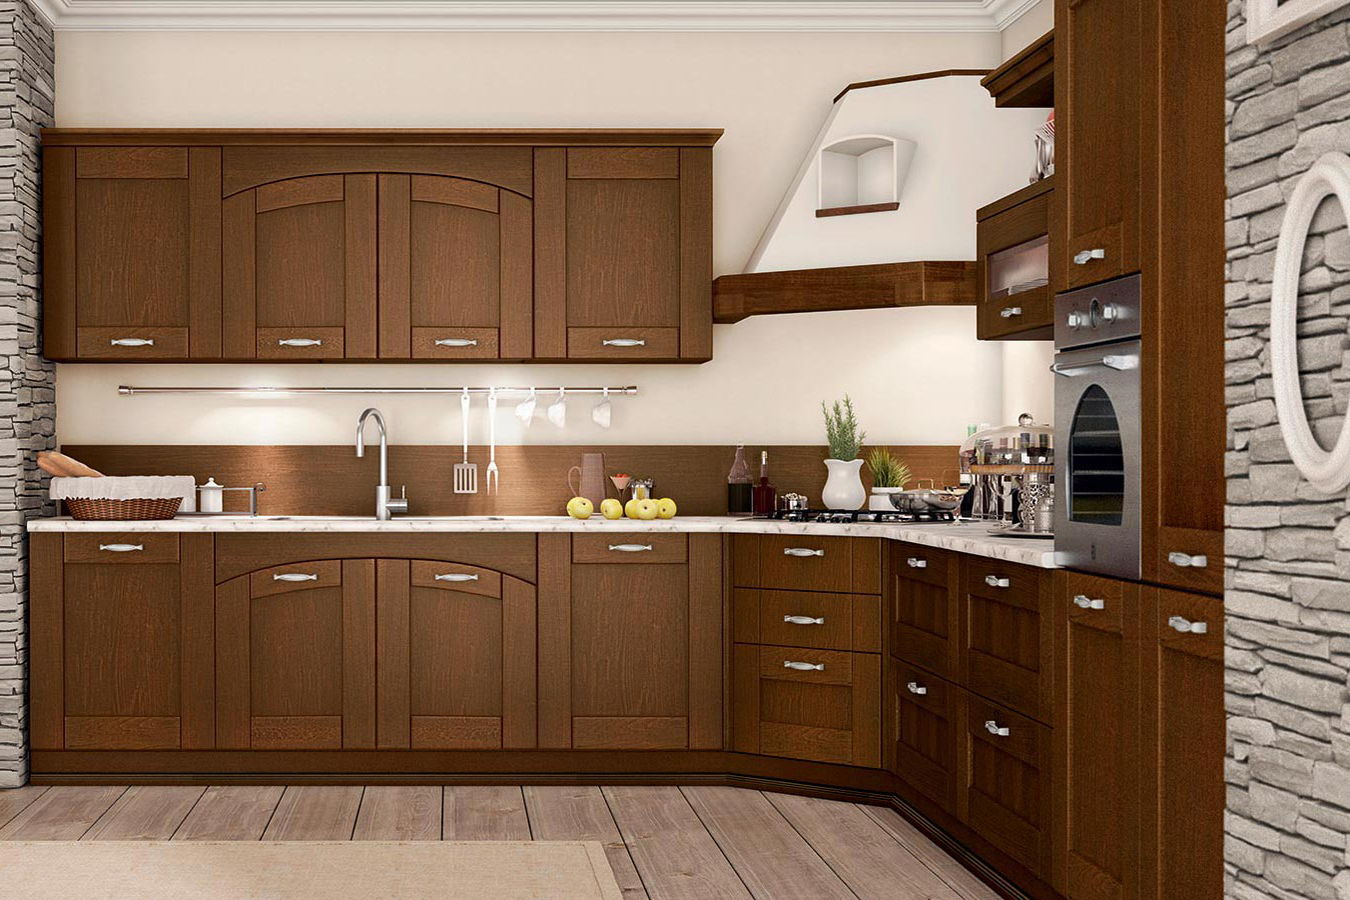 Cucina componibile classica beautiful ue cucine with - Cucine etniche arredamento ...